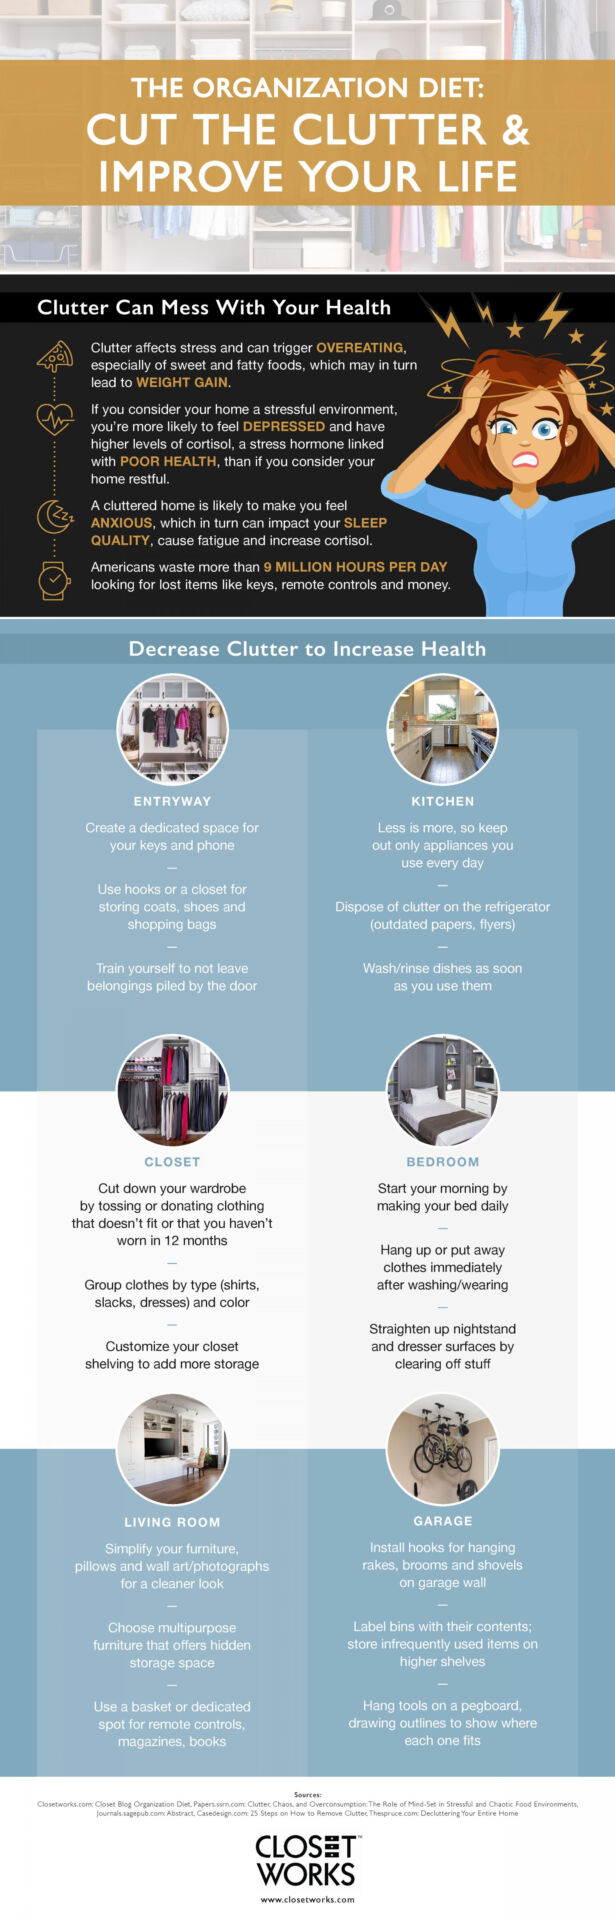 the-organization-diet-cut-the-clutter-improve-your-life